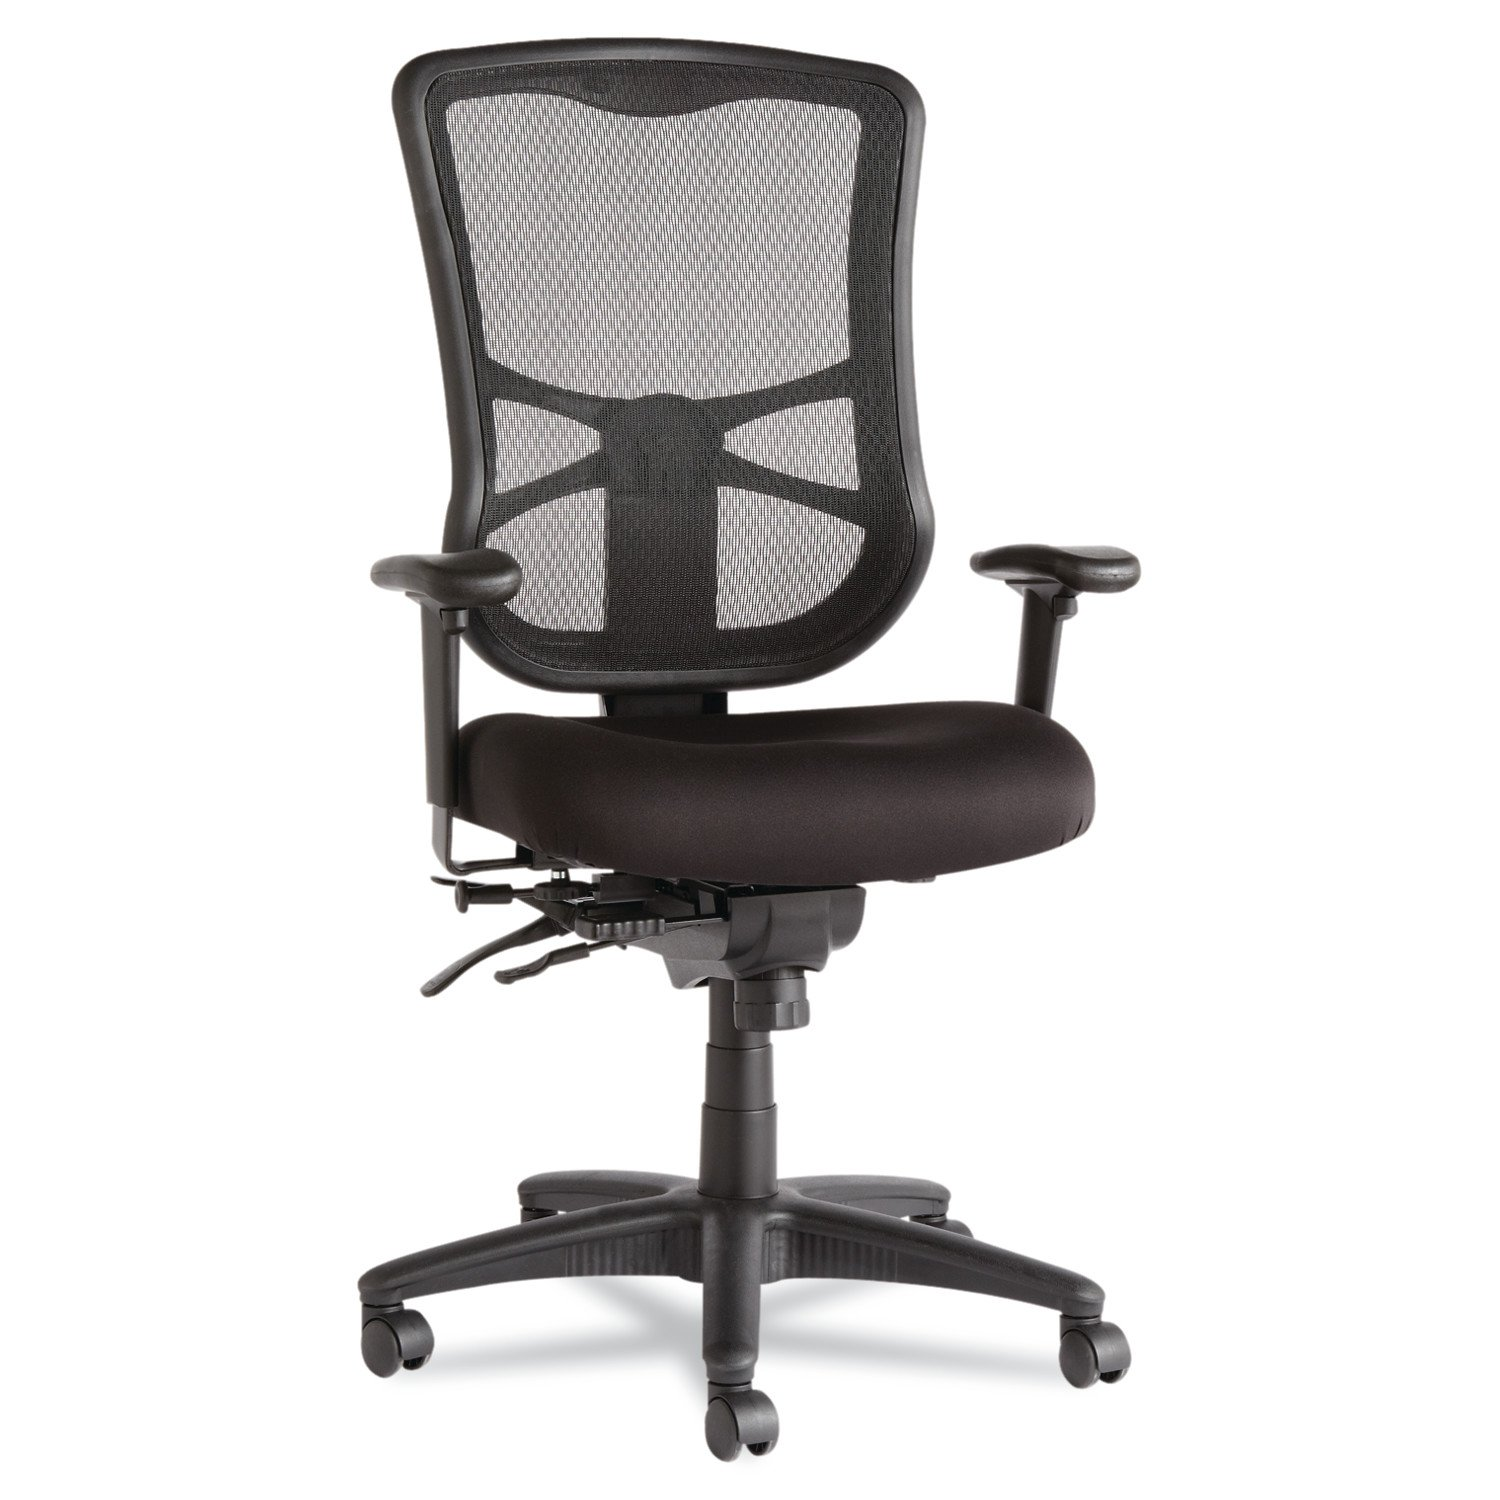 Alera ALEEL41ME10B Elusion Series Mesh High-Back Multifunction Chair